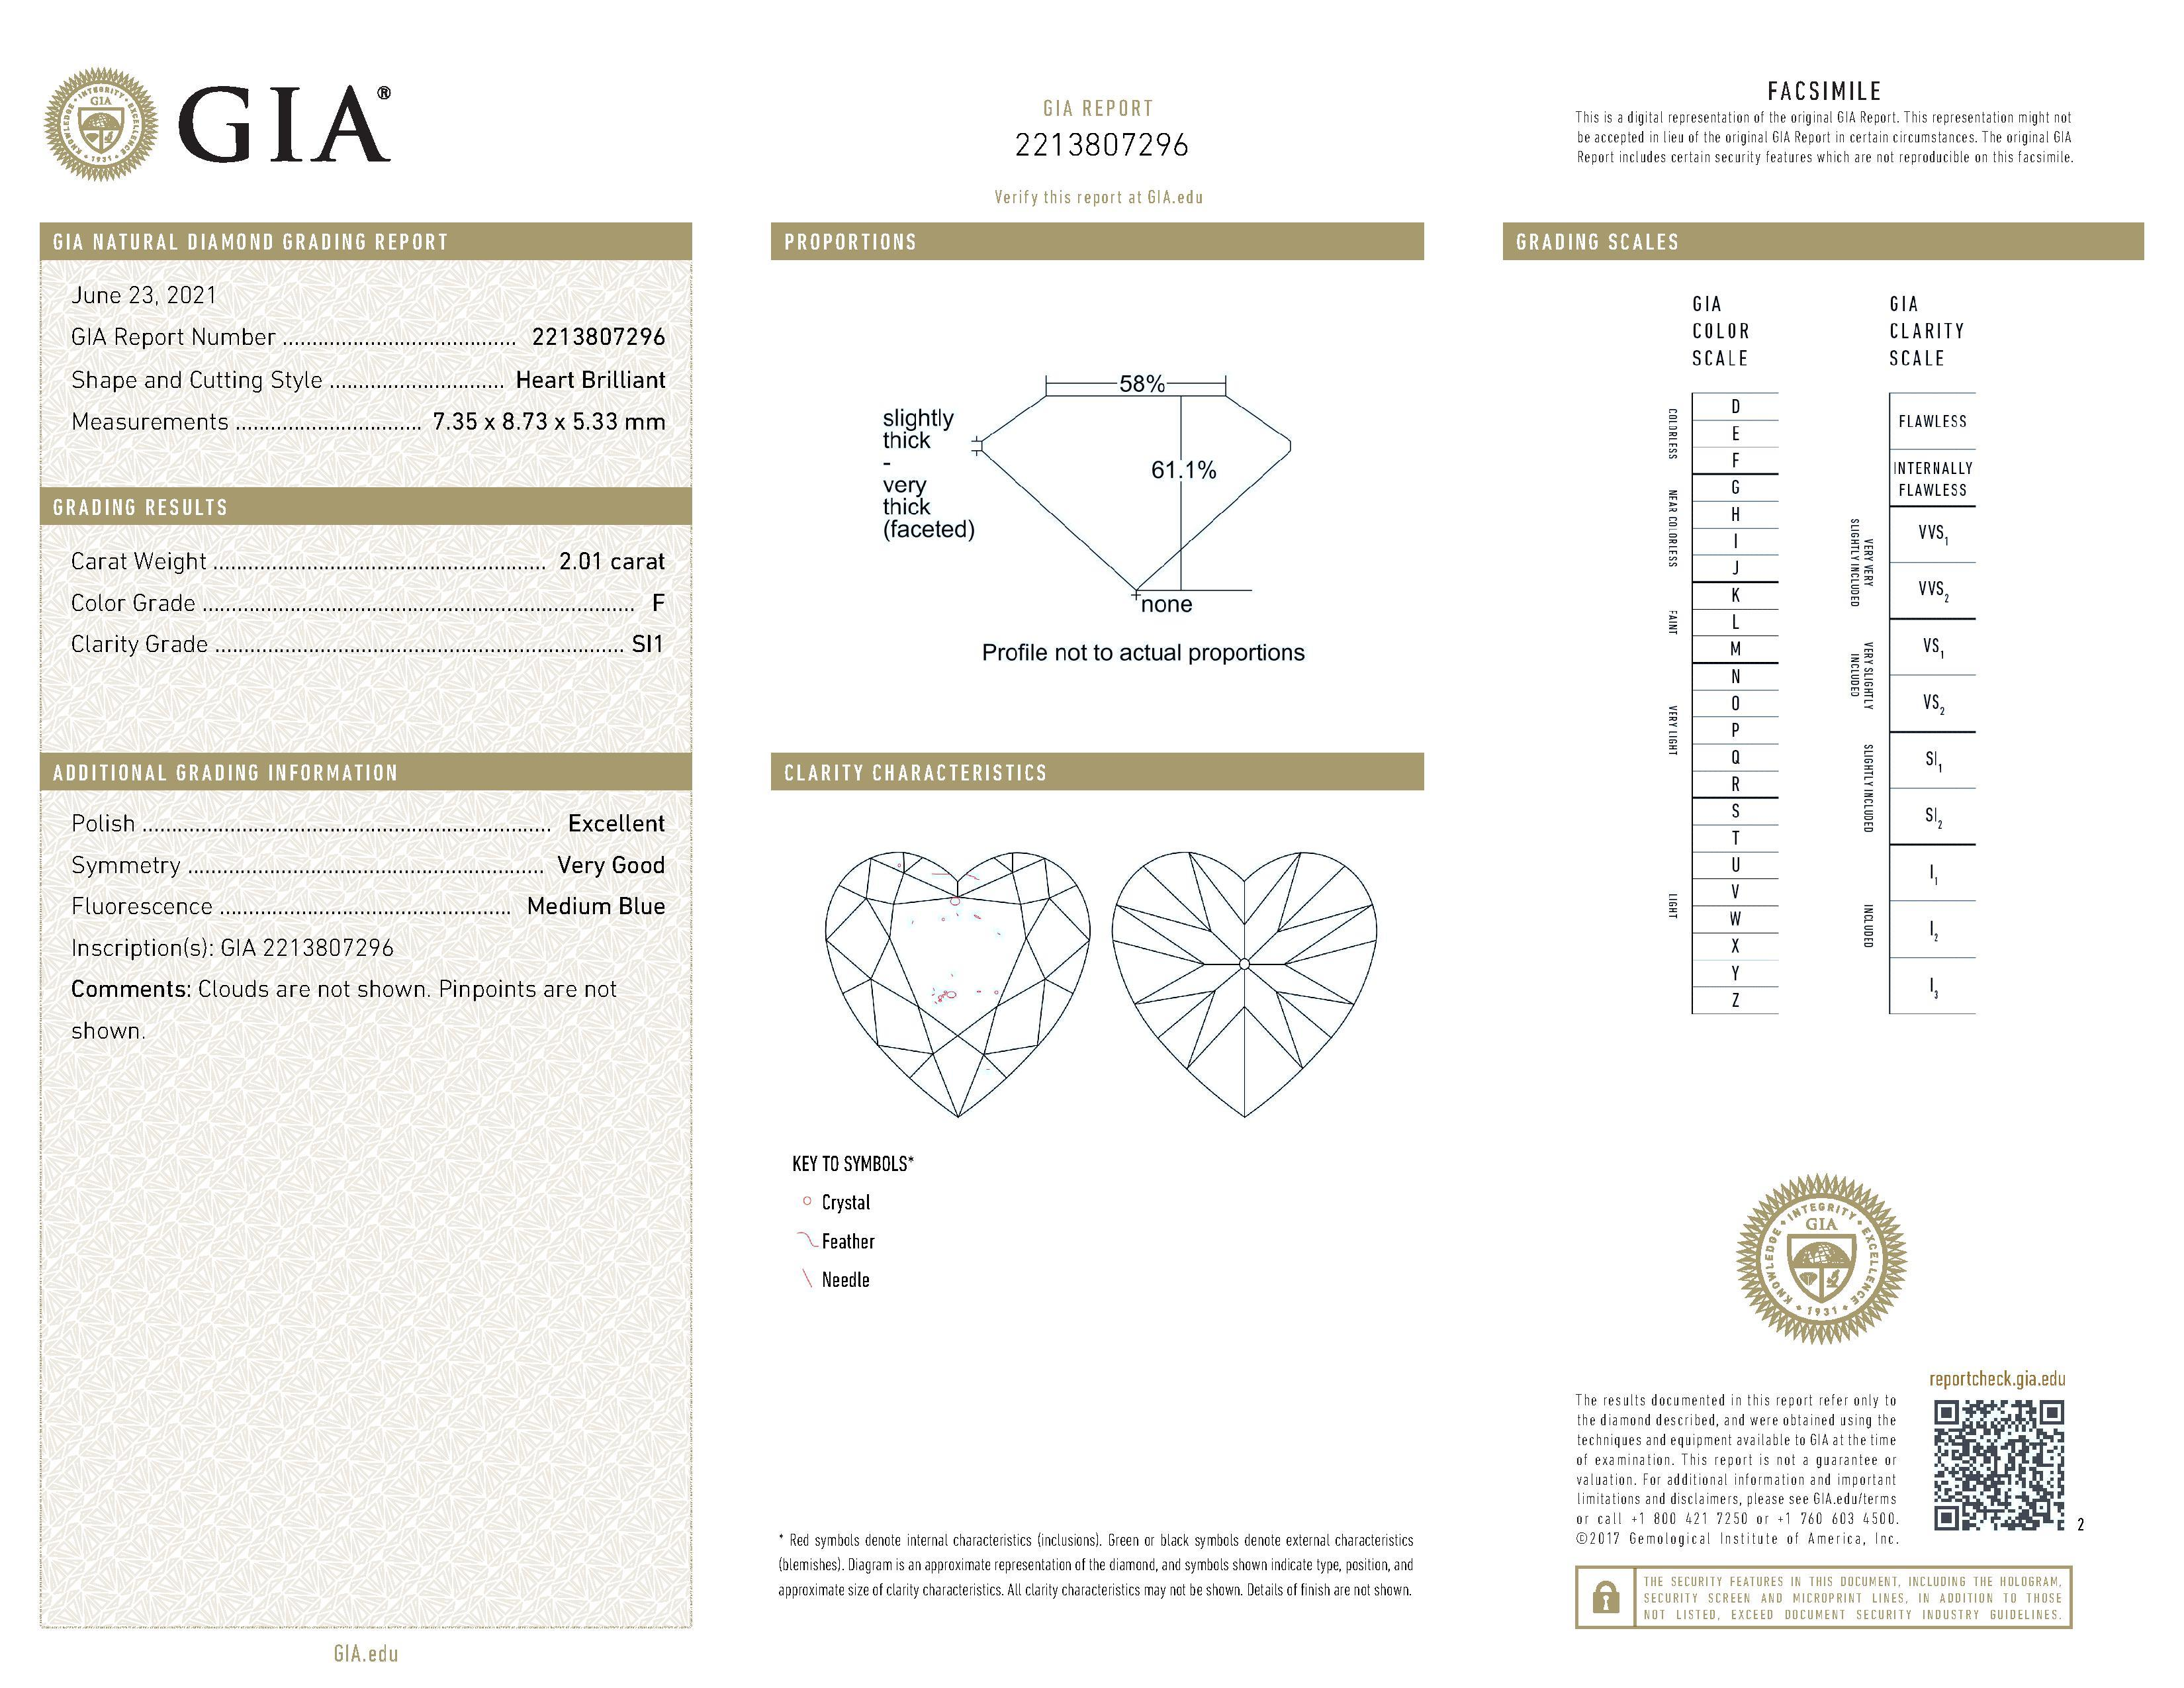 This is a 2.01 carat heart shape, F color, SI1 clarity natural diamond accompanied by a GIA grading report.